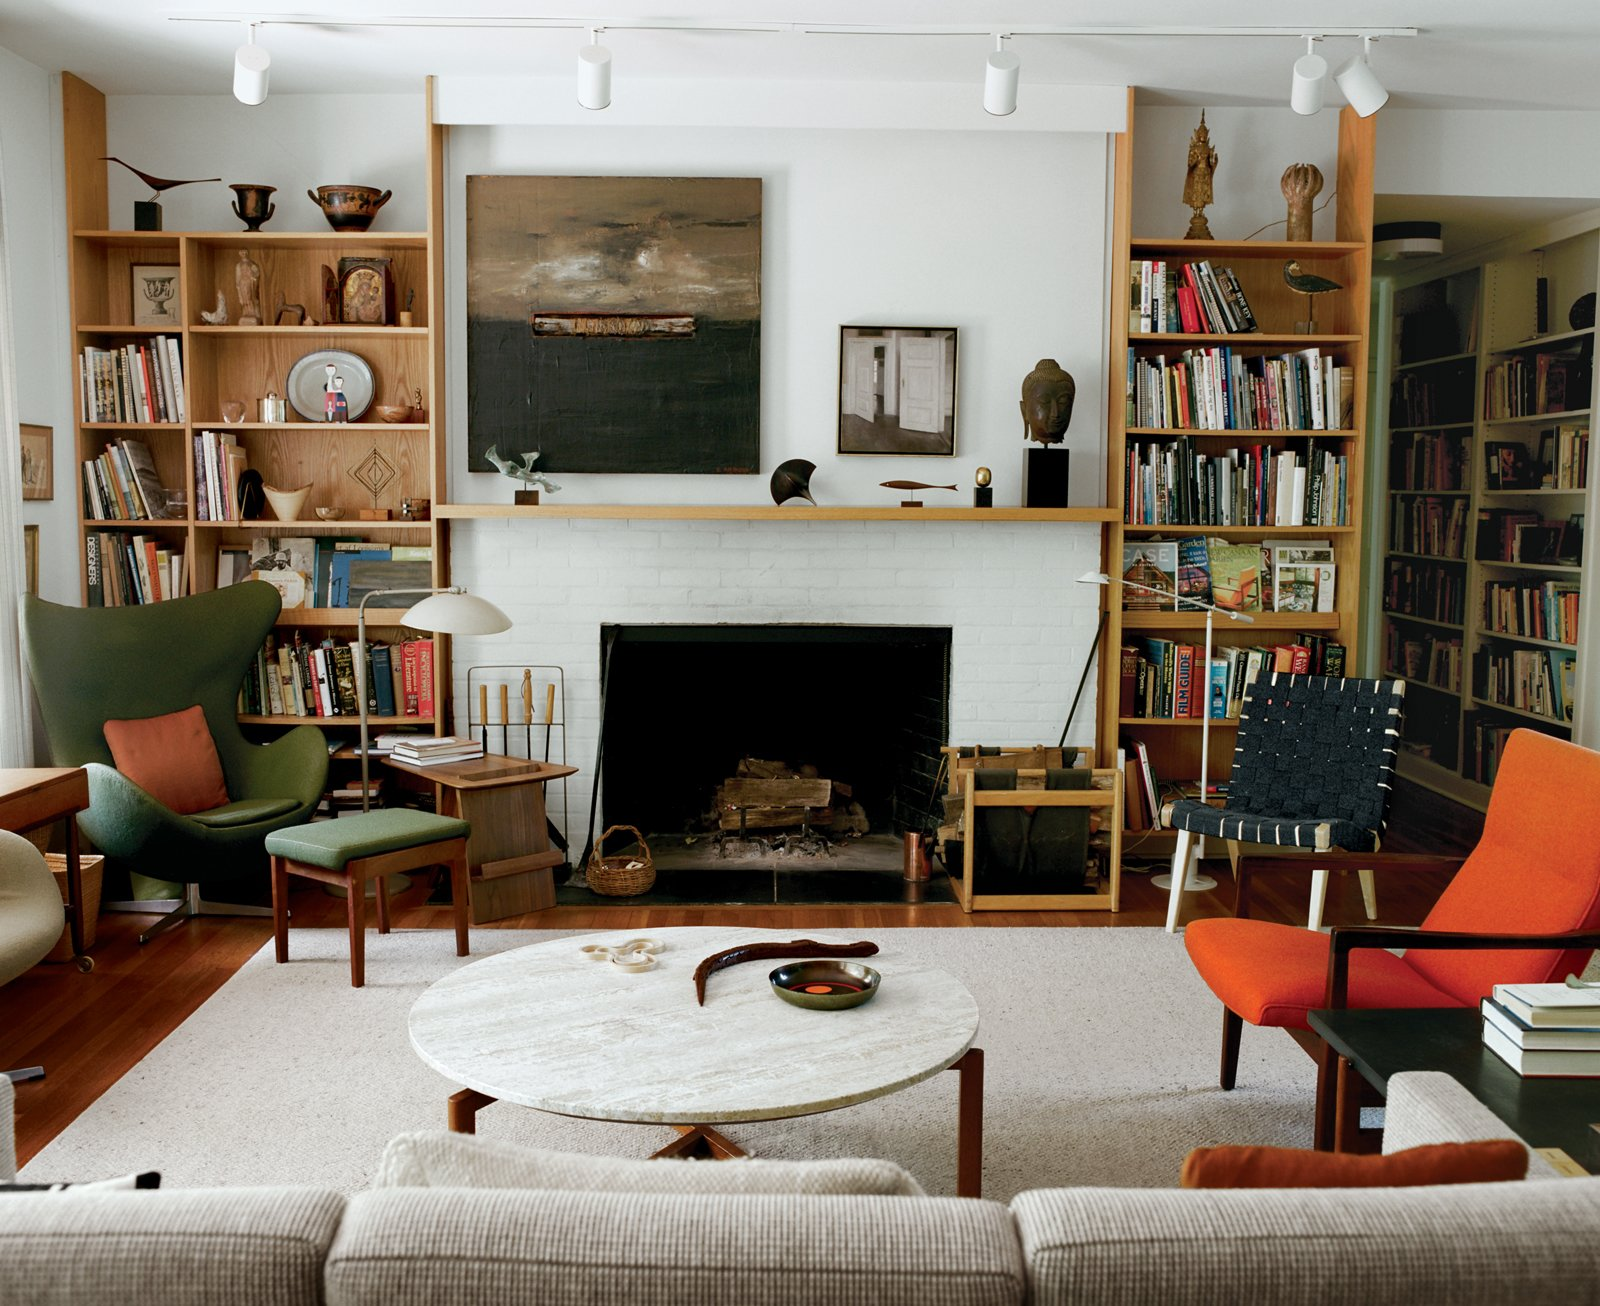 Living Room, Standard Layout Fireplace, Ceiling Lighting, Rug Floor, Coffee Tables, Sofa, Chair, Shelves, Bookcase, Wood Burning Fireplace, and Track Lighting In legendary designer Jens Risom's home, the painted white brick fireplace is flanked by wood bookshelves that join to form a mantle.  Photo 16 of 20 in 20 Modern Living Rooms from Fascinating Risom